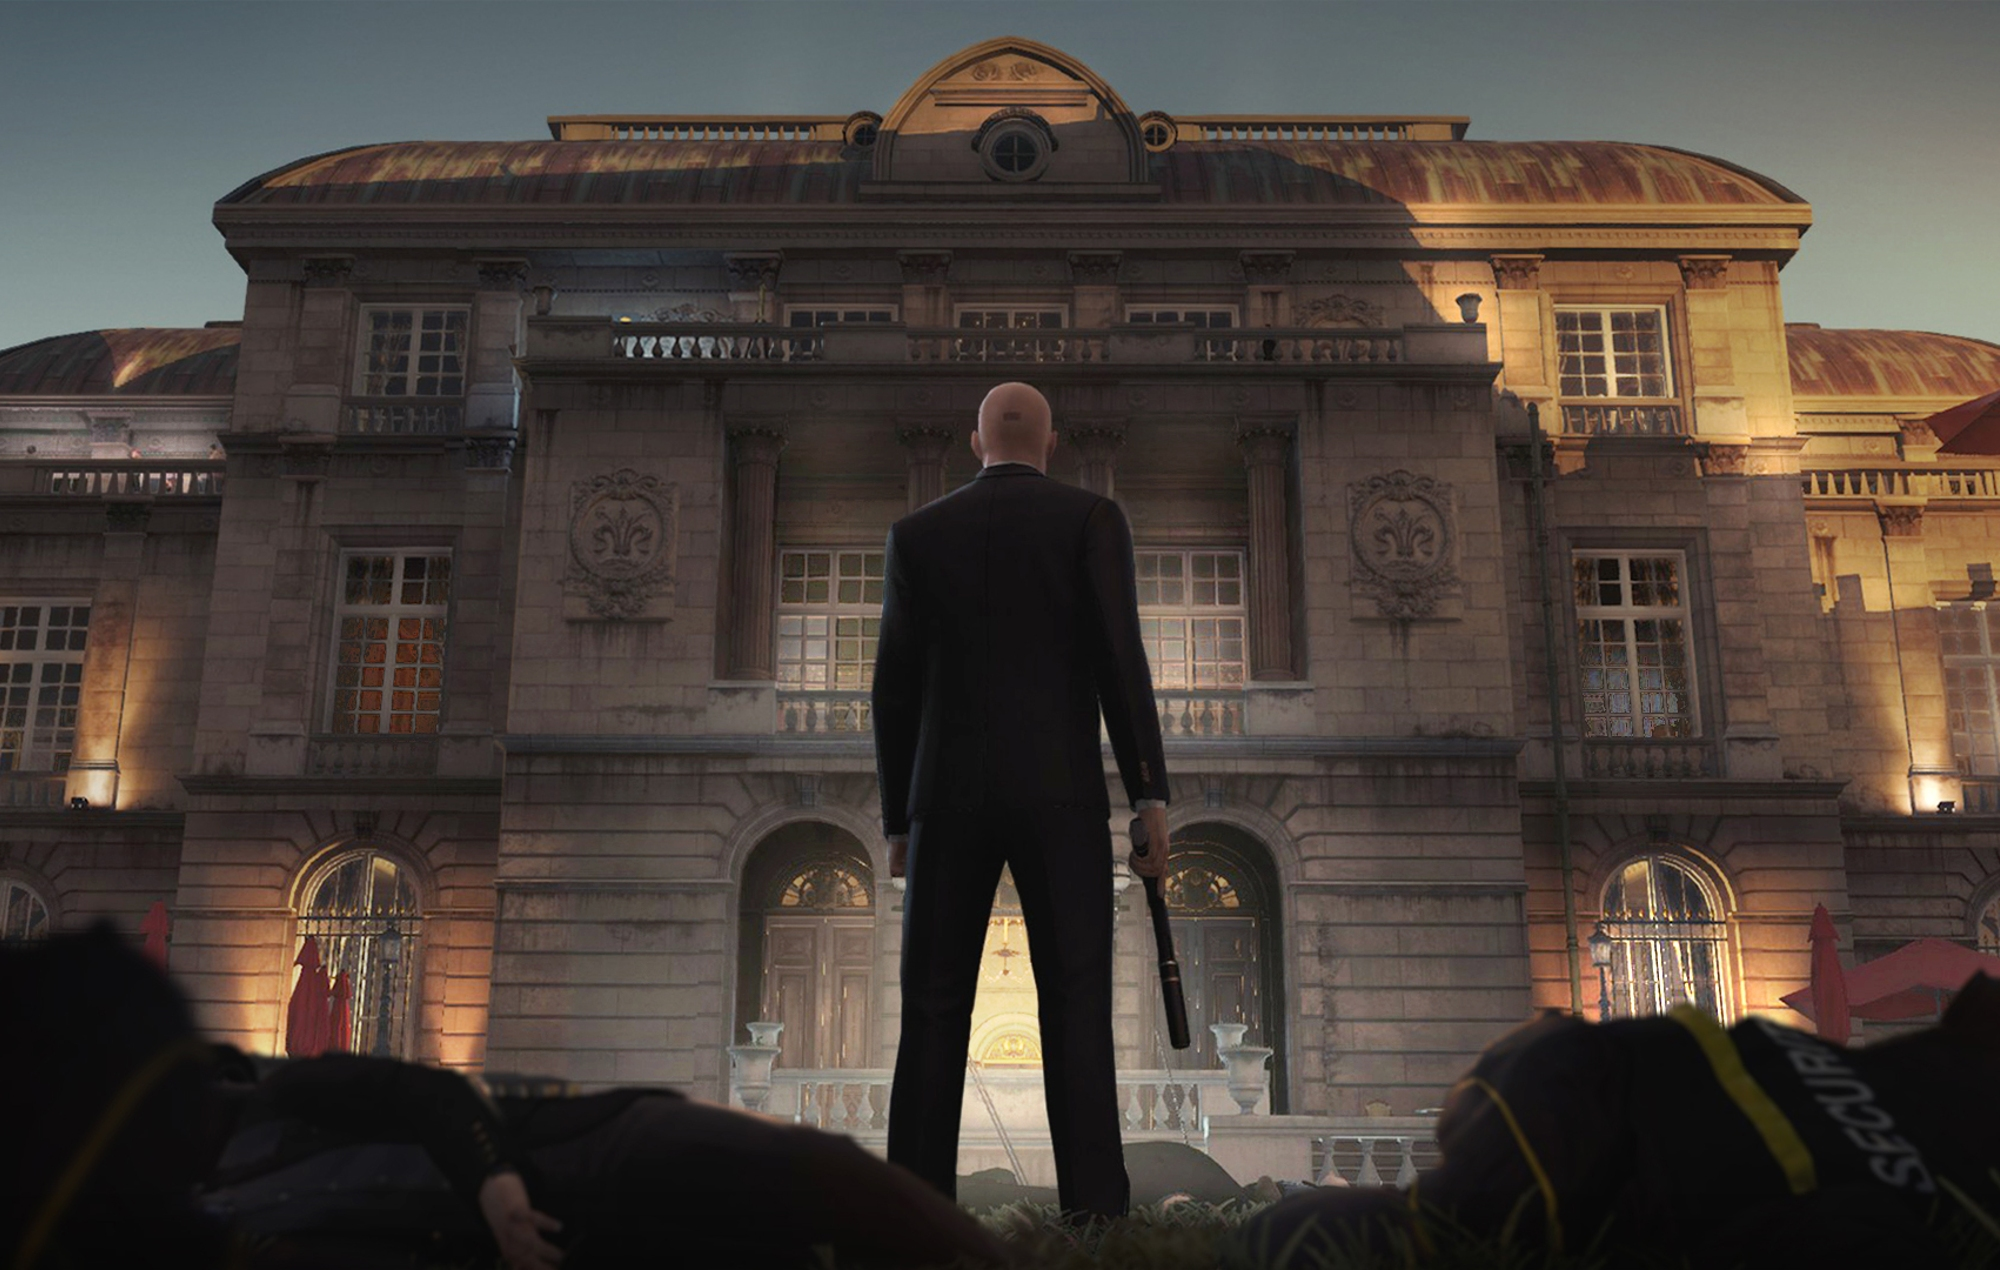 The 2016 edition of Hitman on GOG has been hit with overwhelmingly negative reviews due to the inclusion of DRM. However, the store is removing review